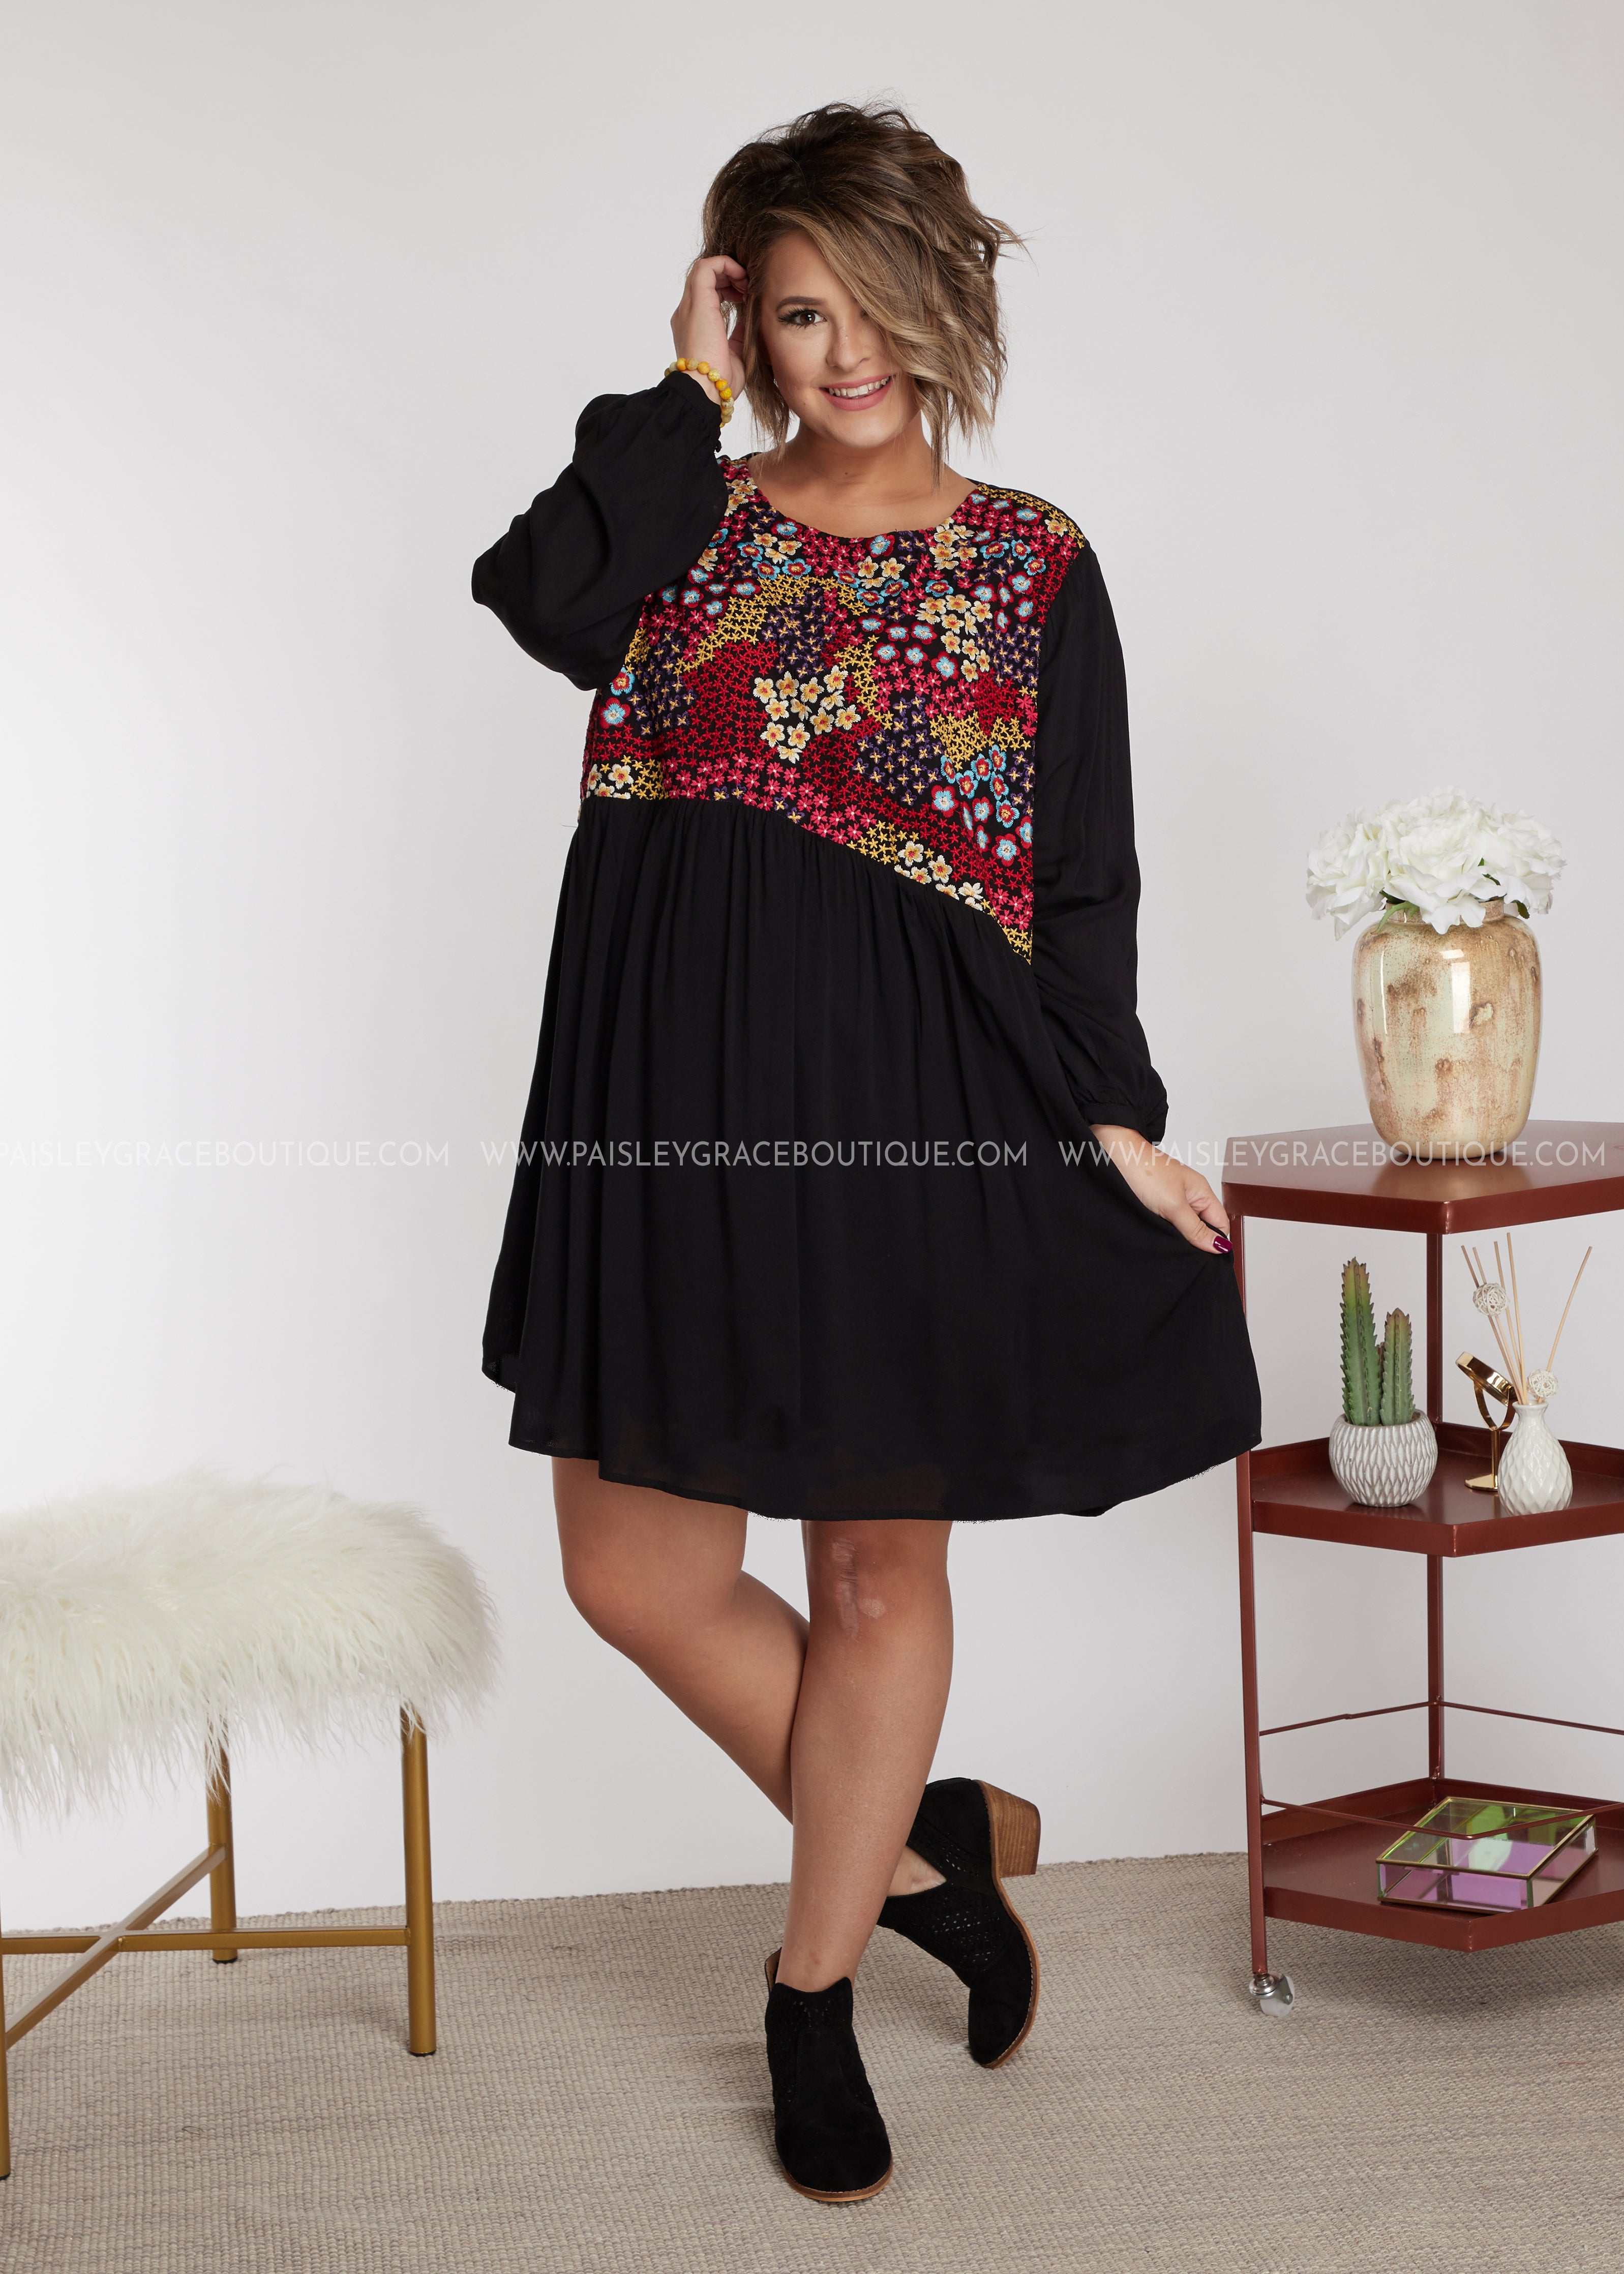 Jezebell Embroidered Dress - FINAL SALE